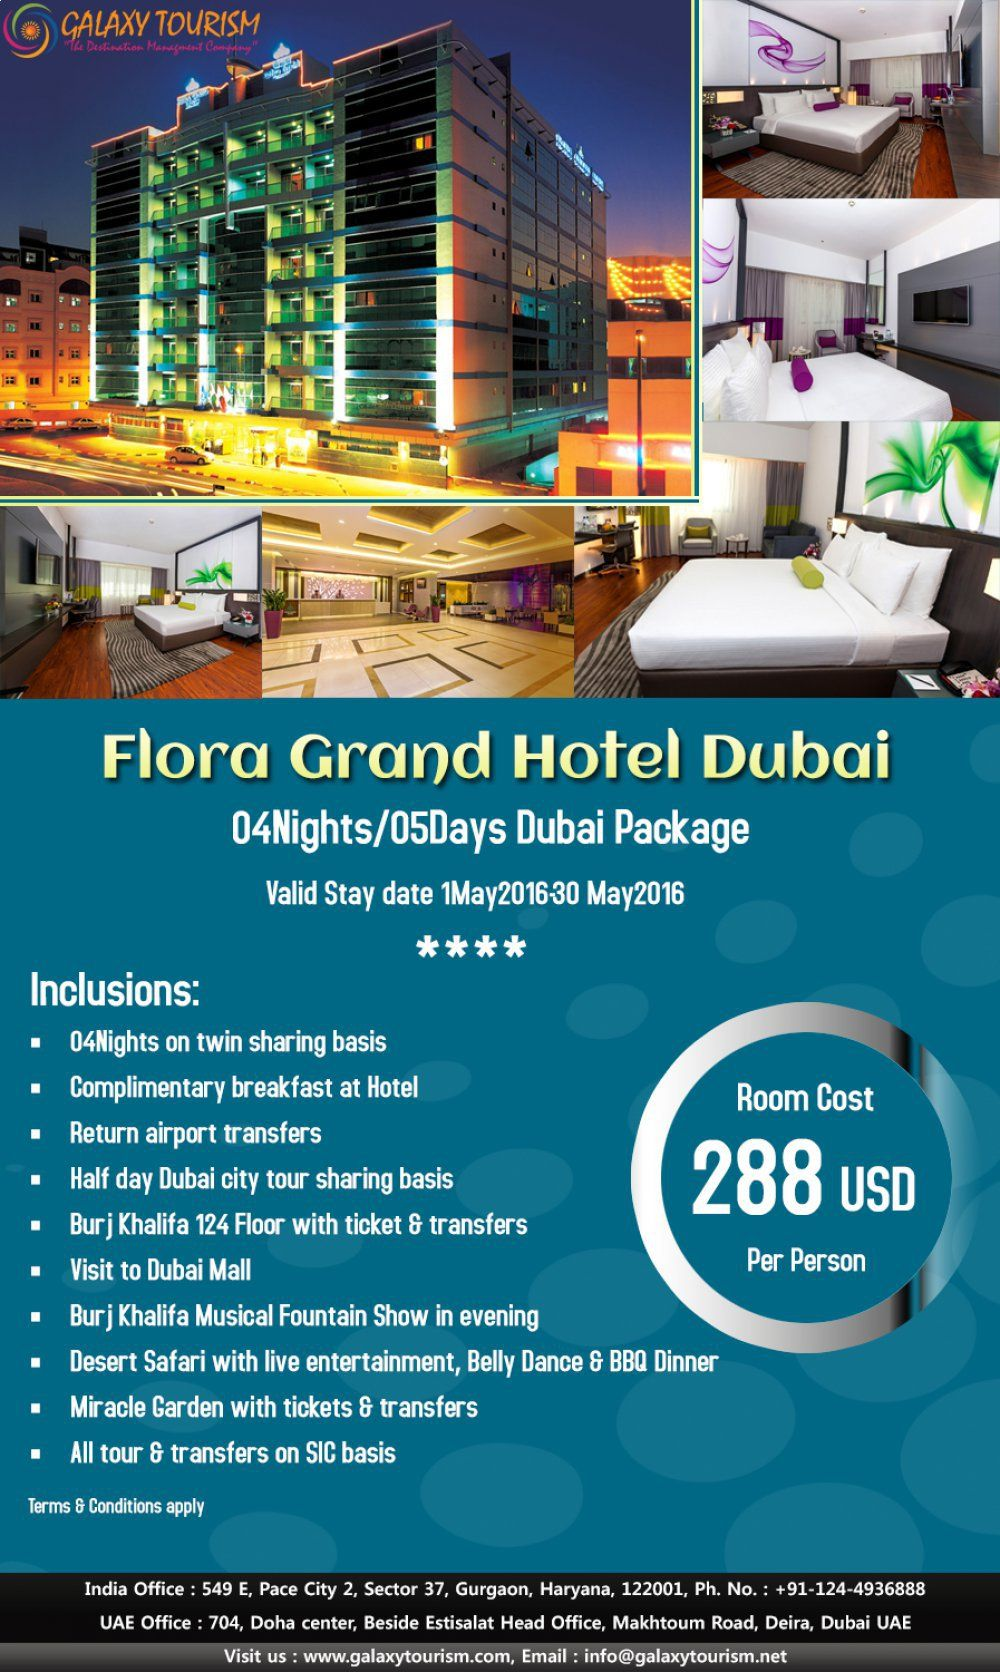 Galaxy tourism offering hotel package for dubai of flora grand hotel at best price contact